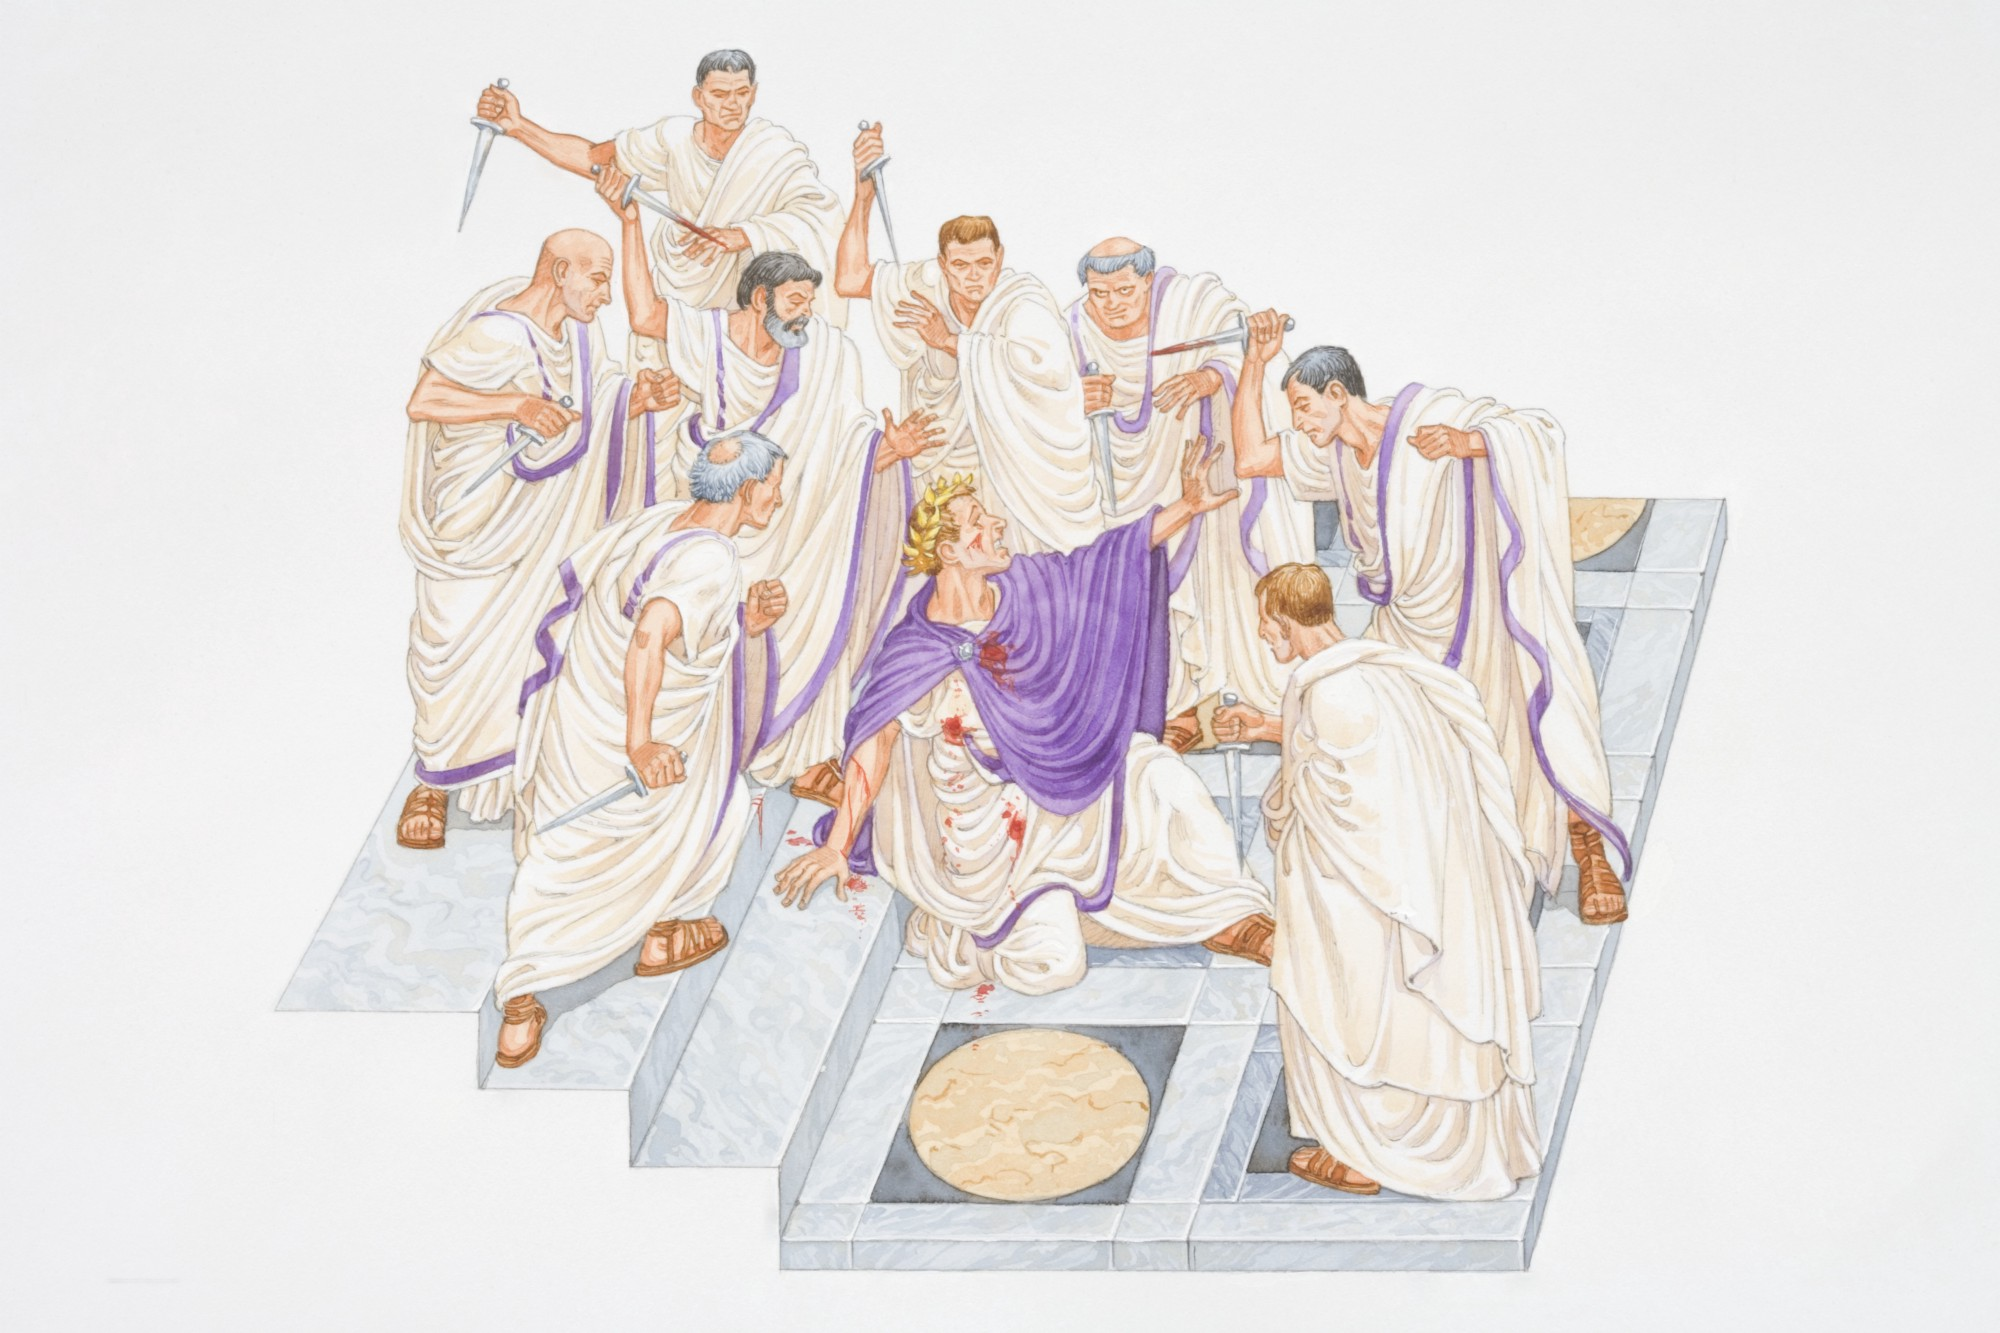 An illustration of Julius Caesar collapsed, wounded, amidst a group of Romans brandishing daggers.